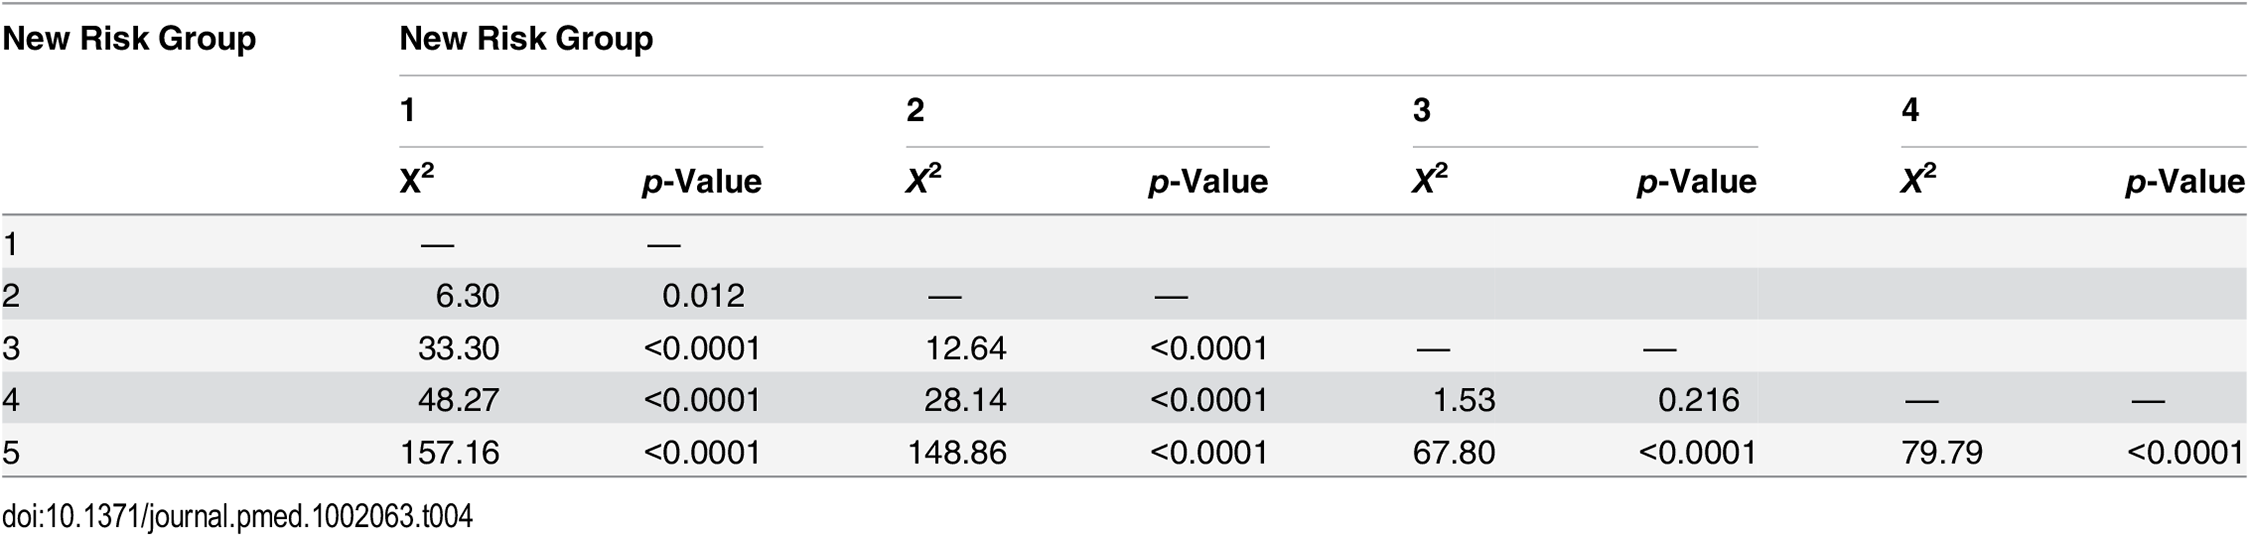 Log-rank pair-wise comparison of new risk groups' association with prostate-cancer-specific mortality in the testing set (<i>n</i> = 4,113).